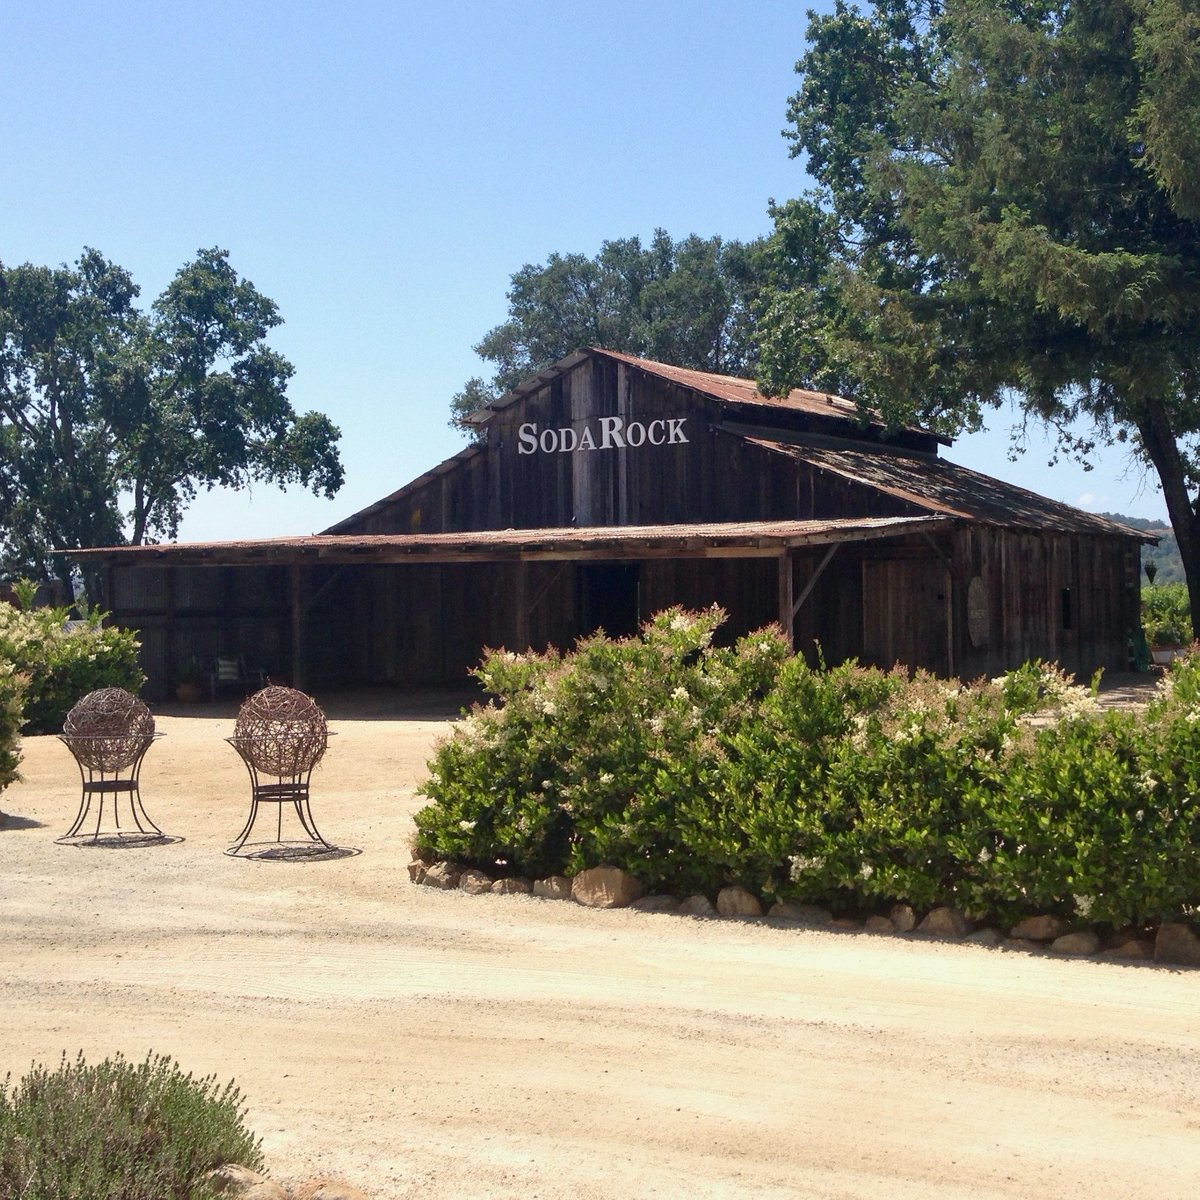 The #KincadeFire destroyed most buildings @SodaRockWinery, but this barn survived and tastings have resumed Fri.-Sun., 11-4. #SonomaStrong! For more ideas about how to support Wine Country workers/businesses and have a great time, see  in @MarinMagazine.